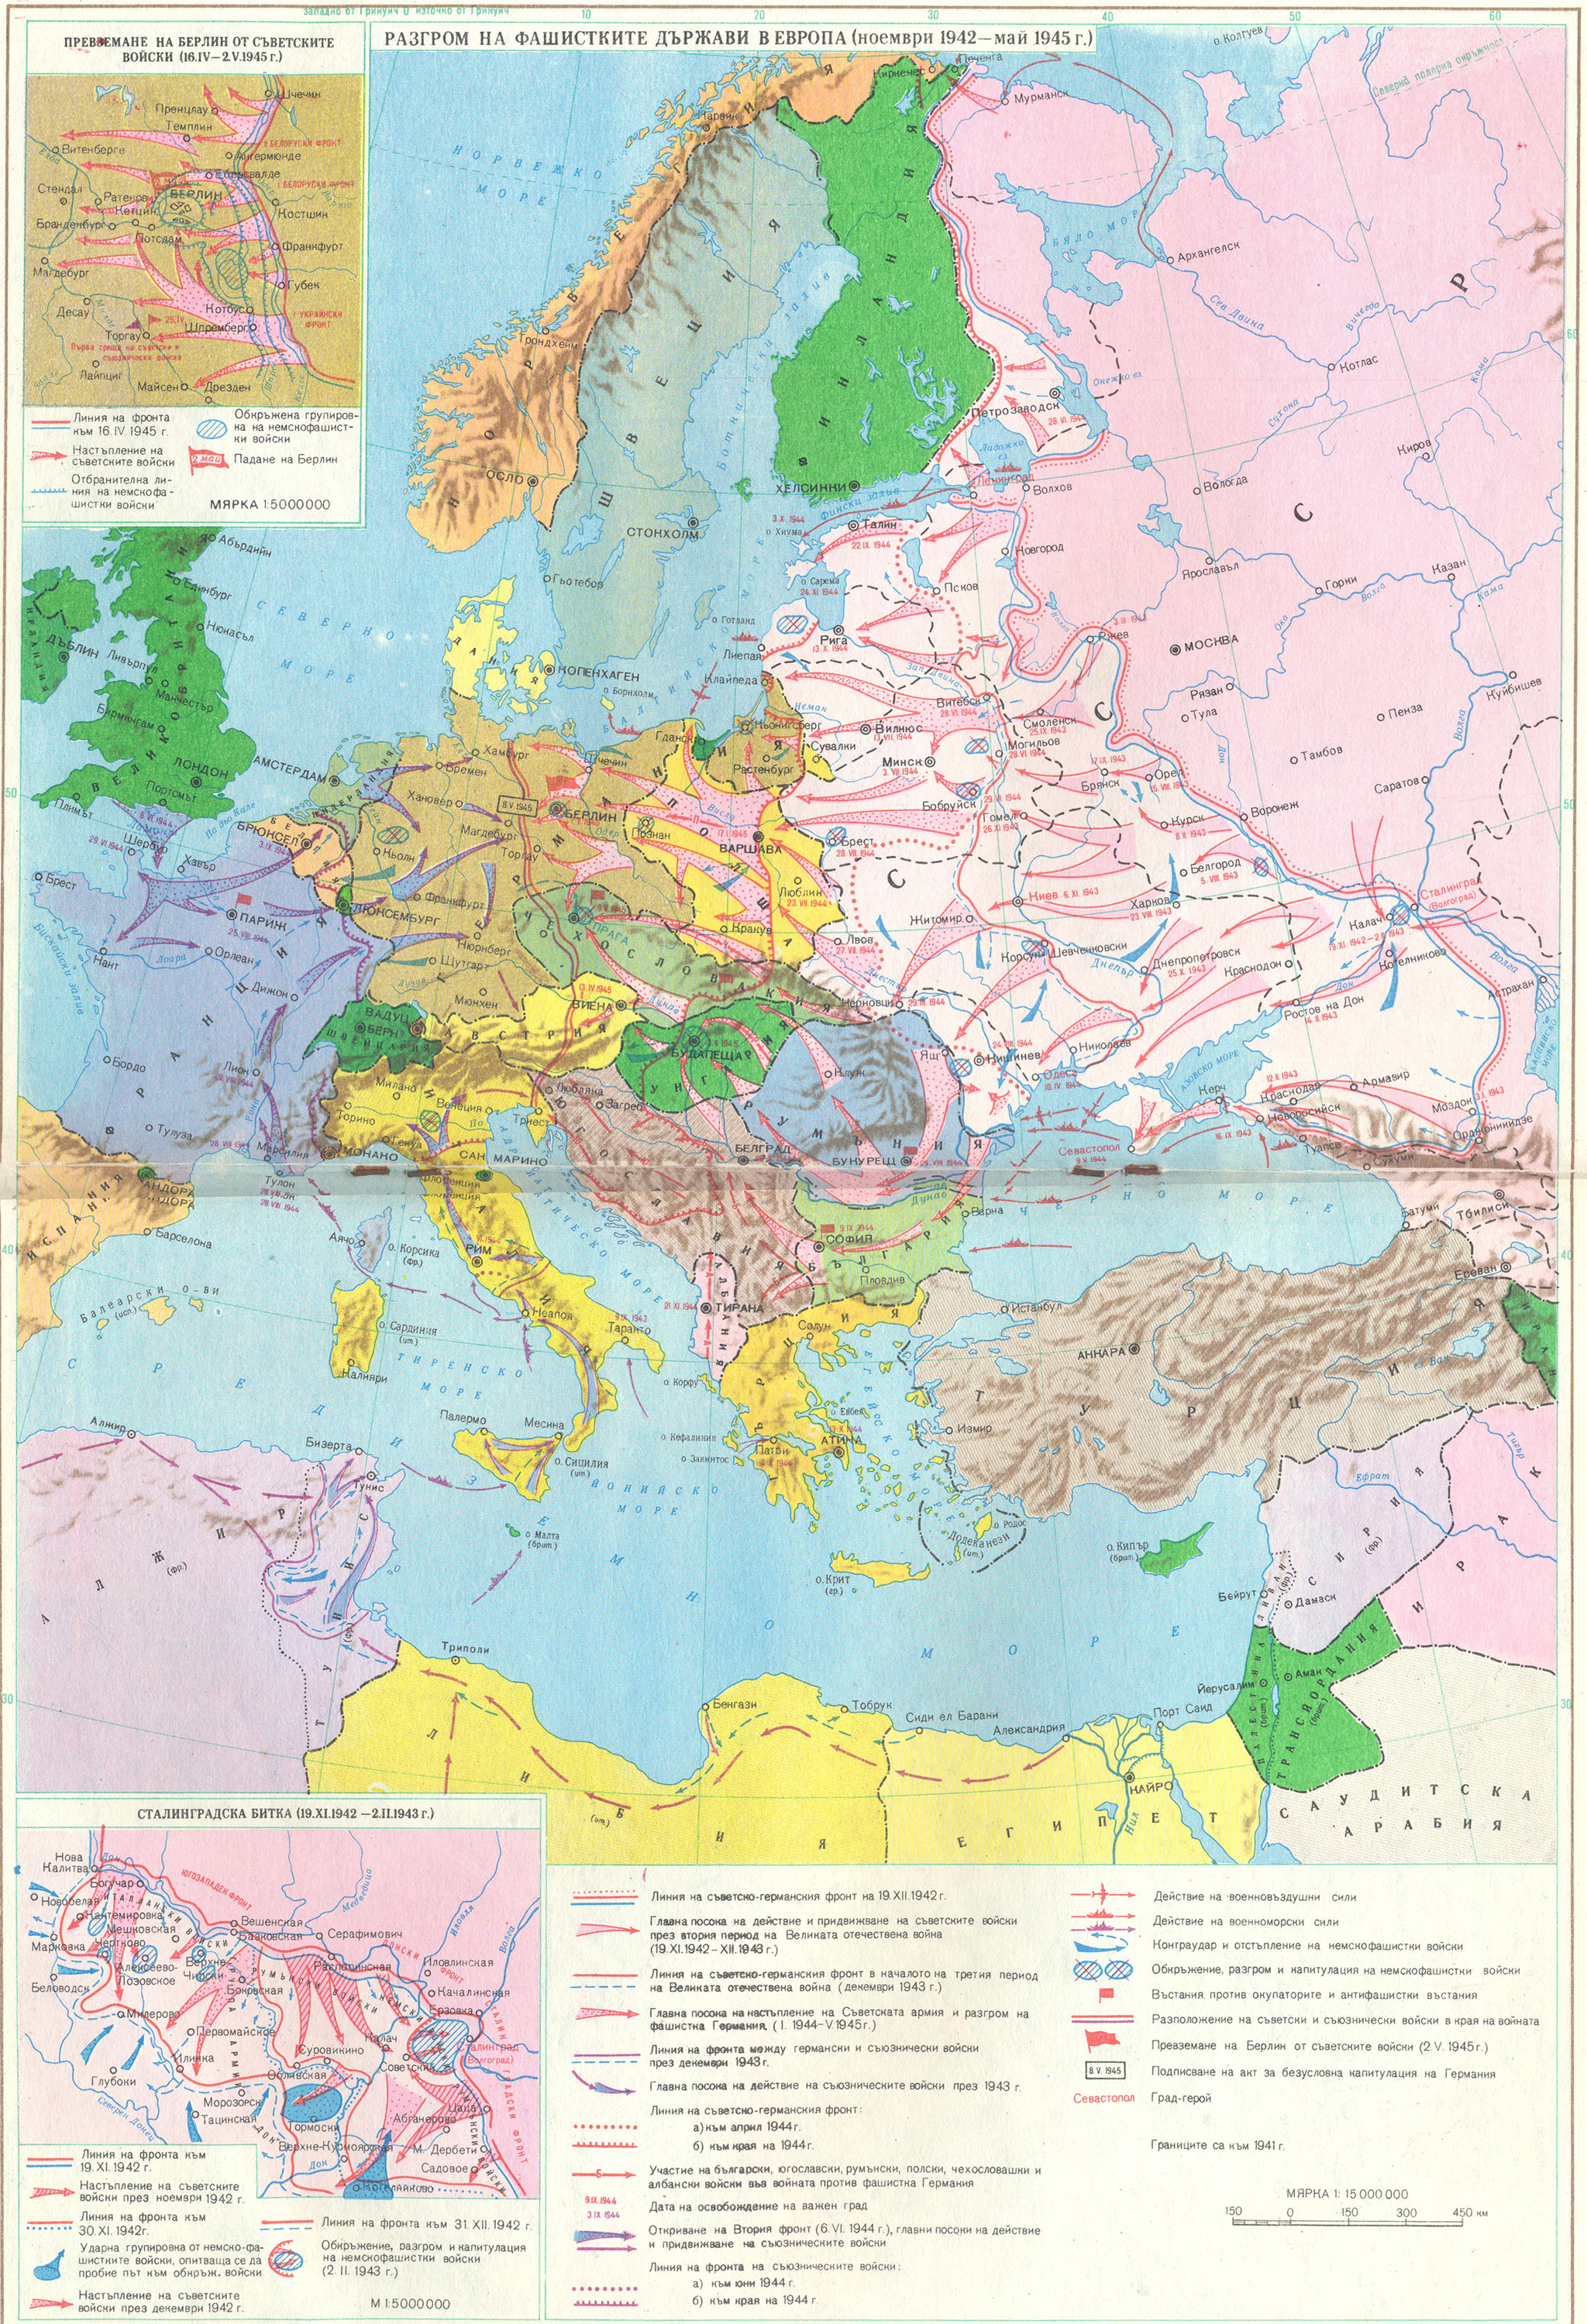 Nazi Map Of Europe.Defeat Of Nazi Countries In Europe Hd Maps